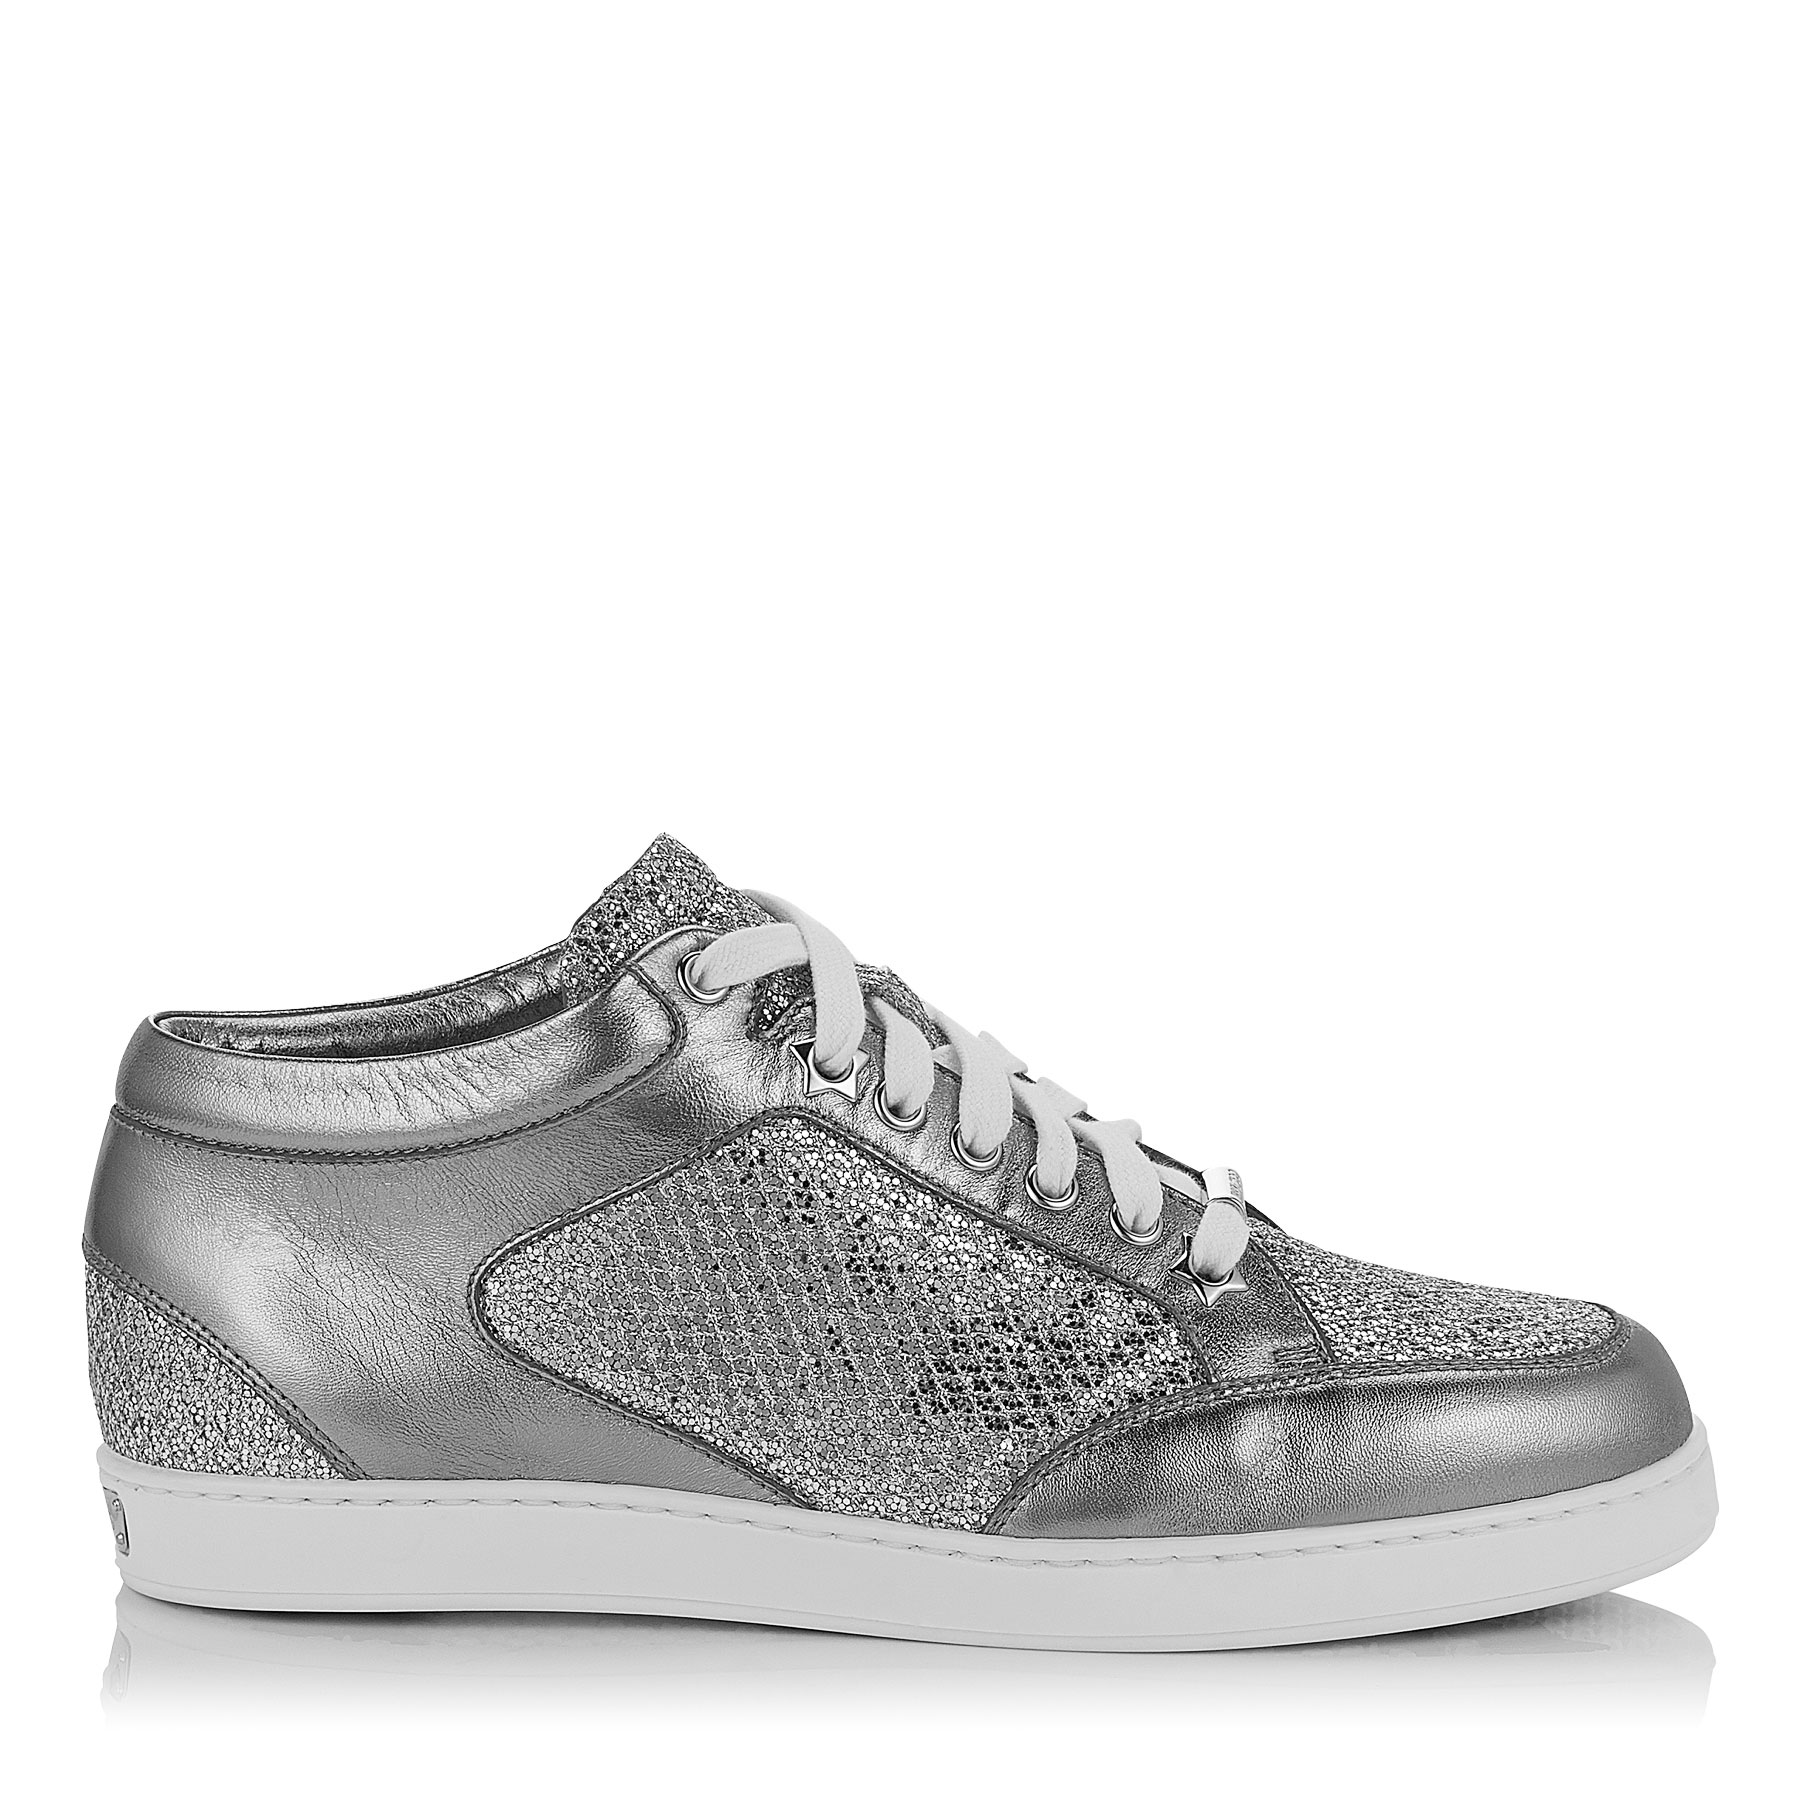 Photo of MIAMI Silver Glitter Fabric Metallic Nappa Low Top Trainers by Jimmy Choo womens shoes - buy Jimmy Choo footwear online